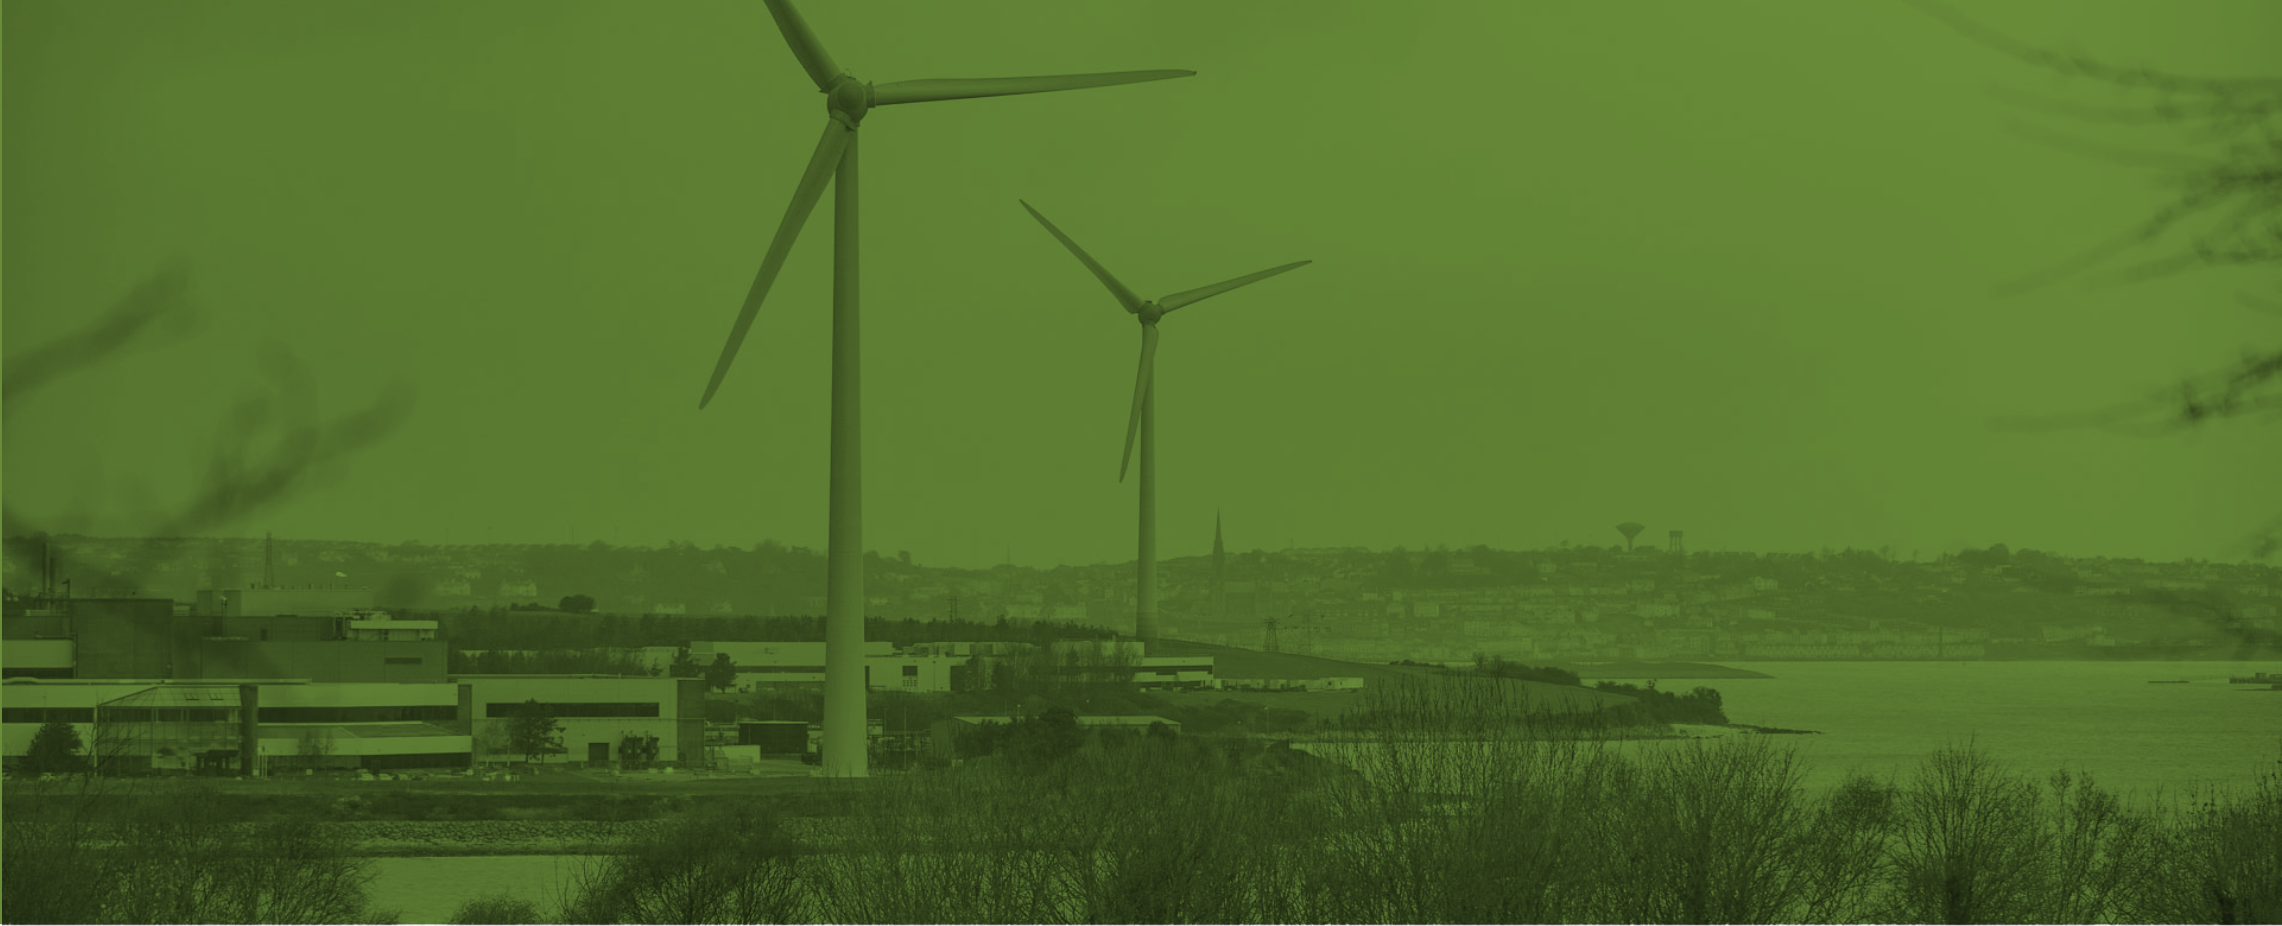 Windmills and global sustainability initiatives